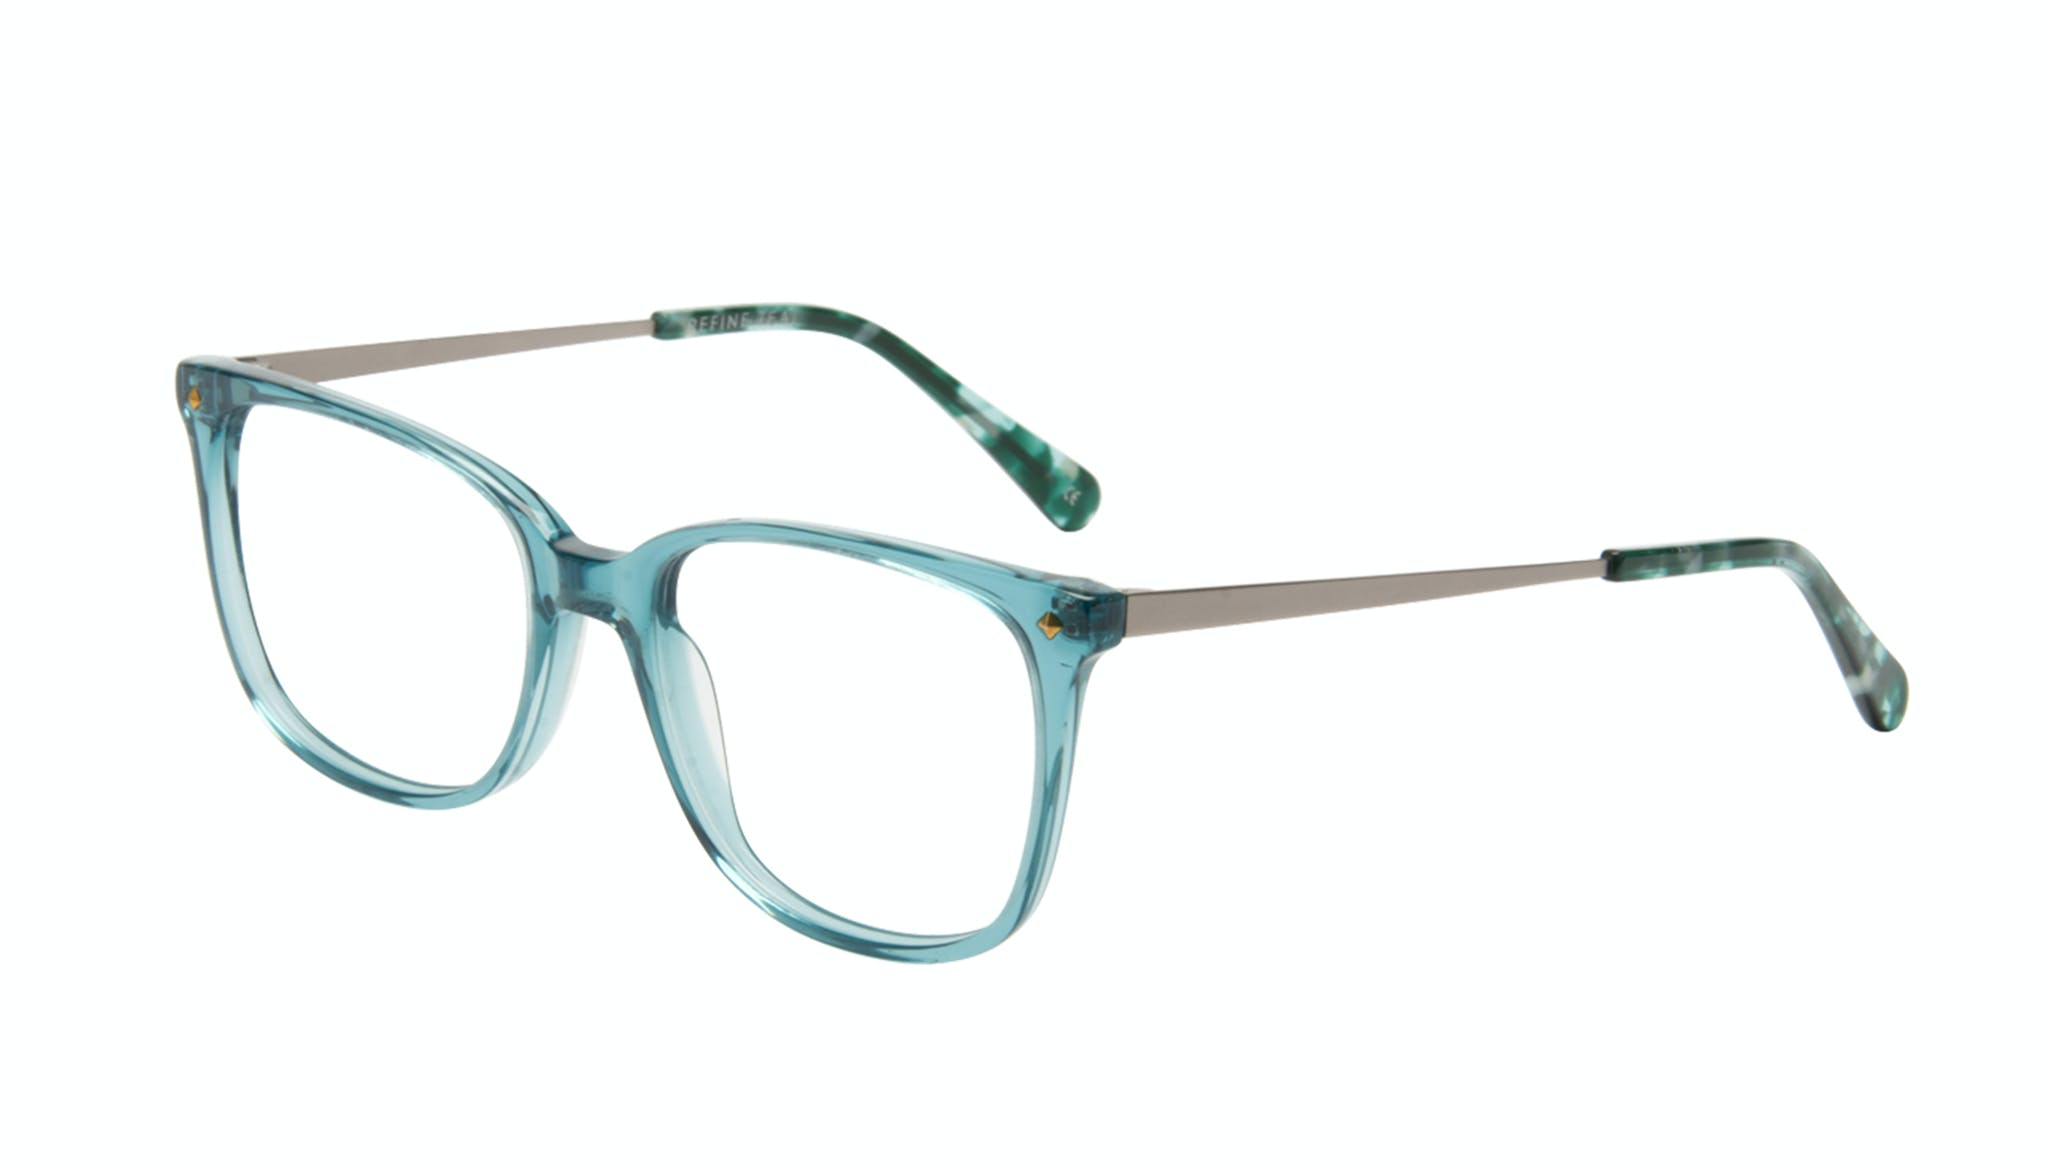 Affordable Fashion Glasses Rectangle Square Eyeglasses Women Refine Teal Tilt